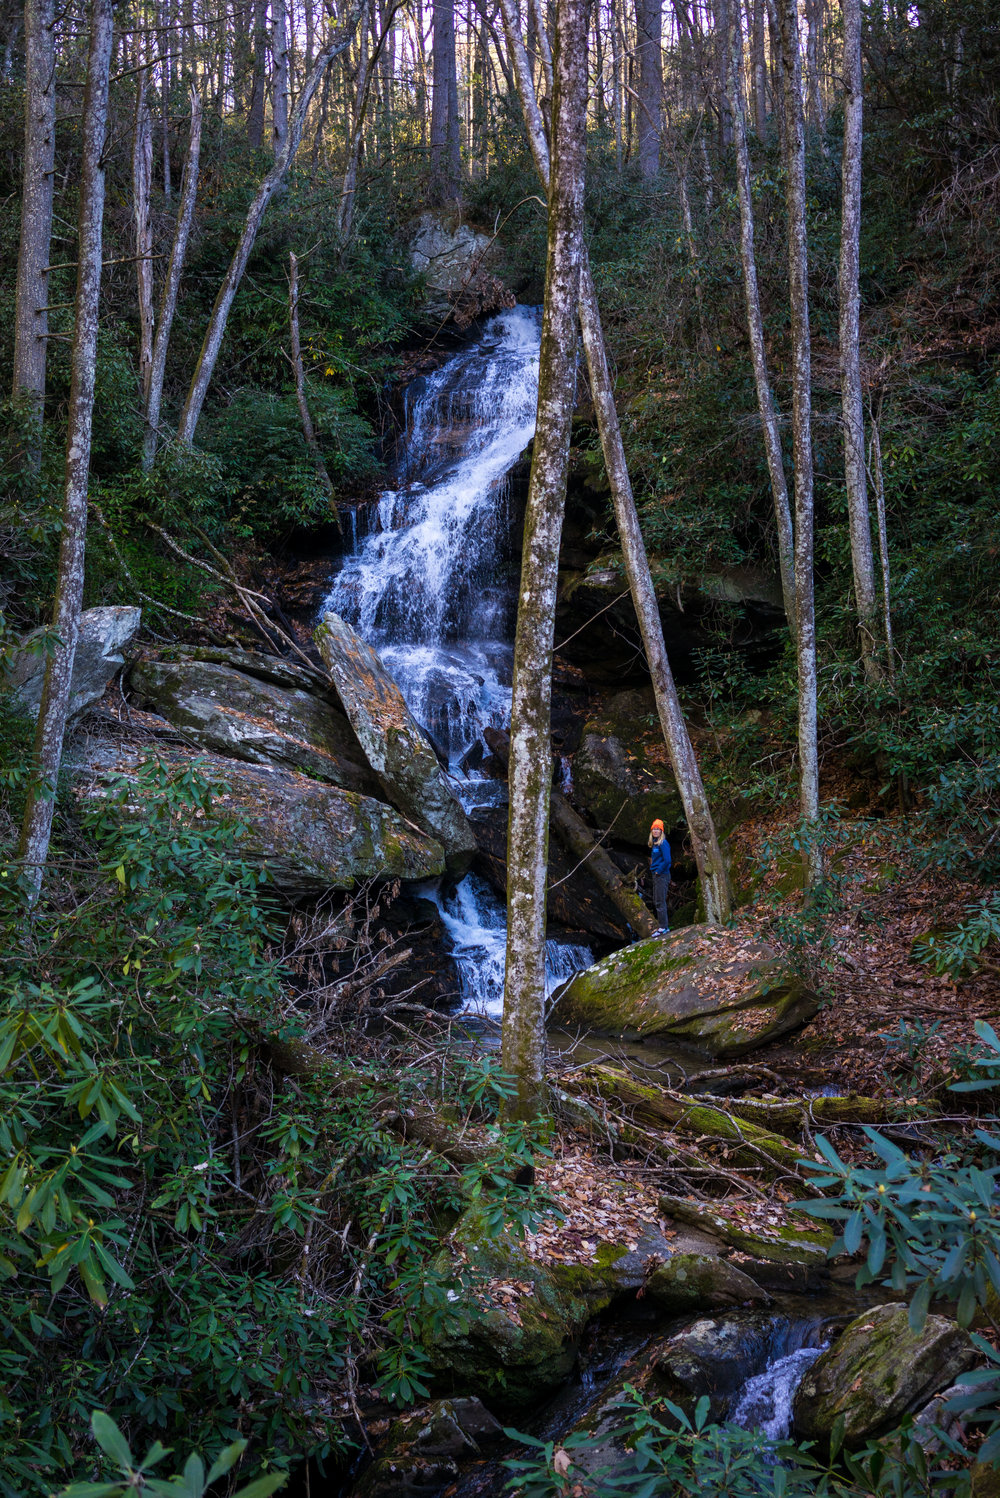 Found a waterfall up the road from camp